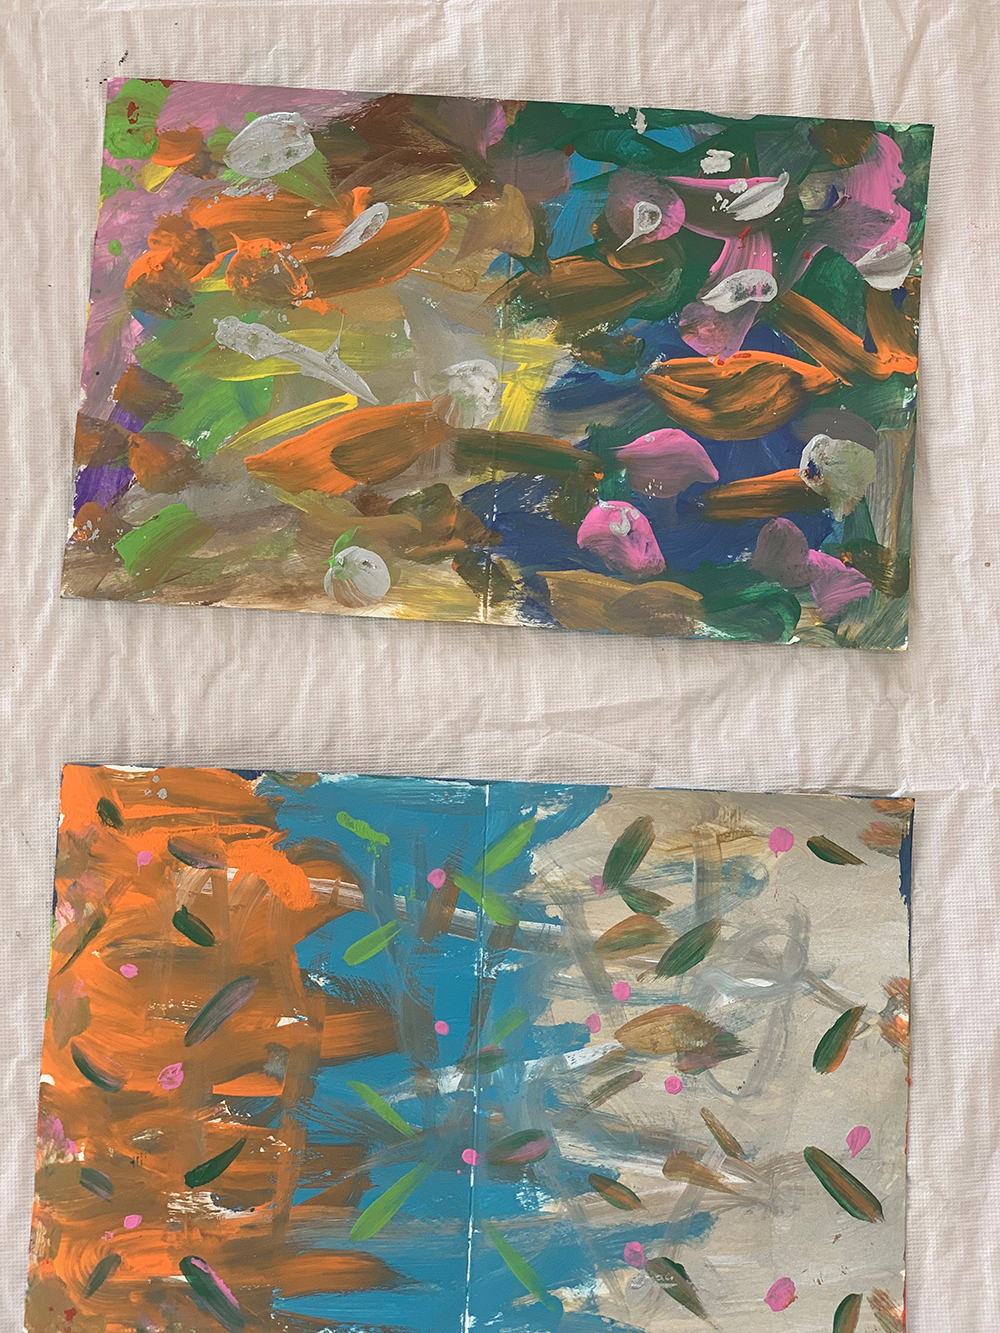 My canvas art pieces that I created, which were analyzed by the creative art coach.